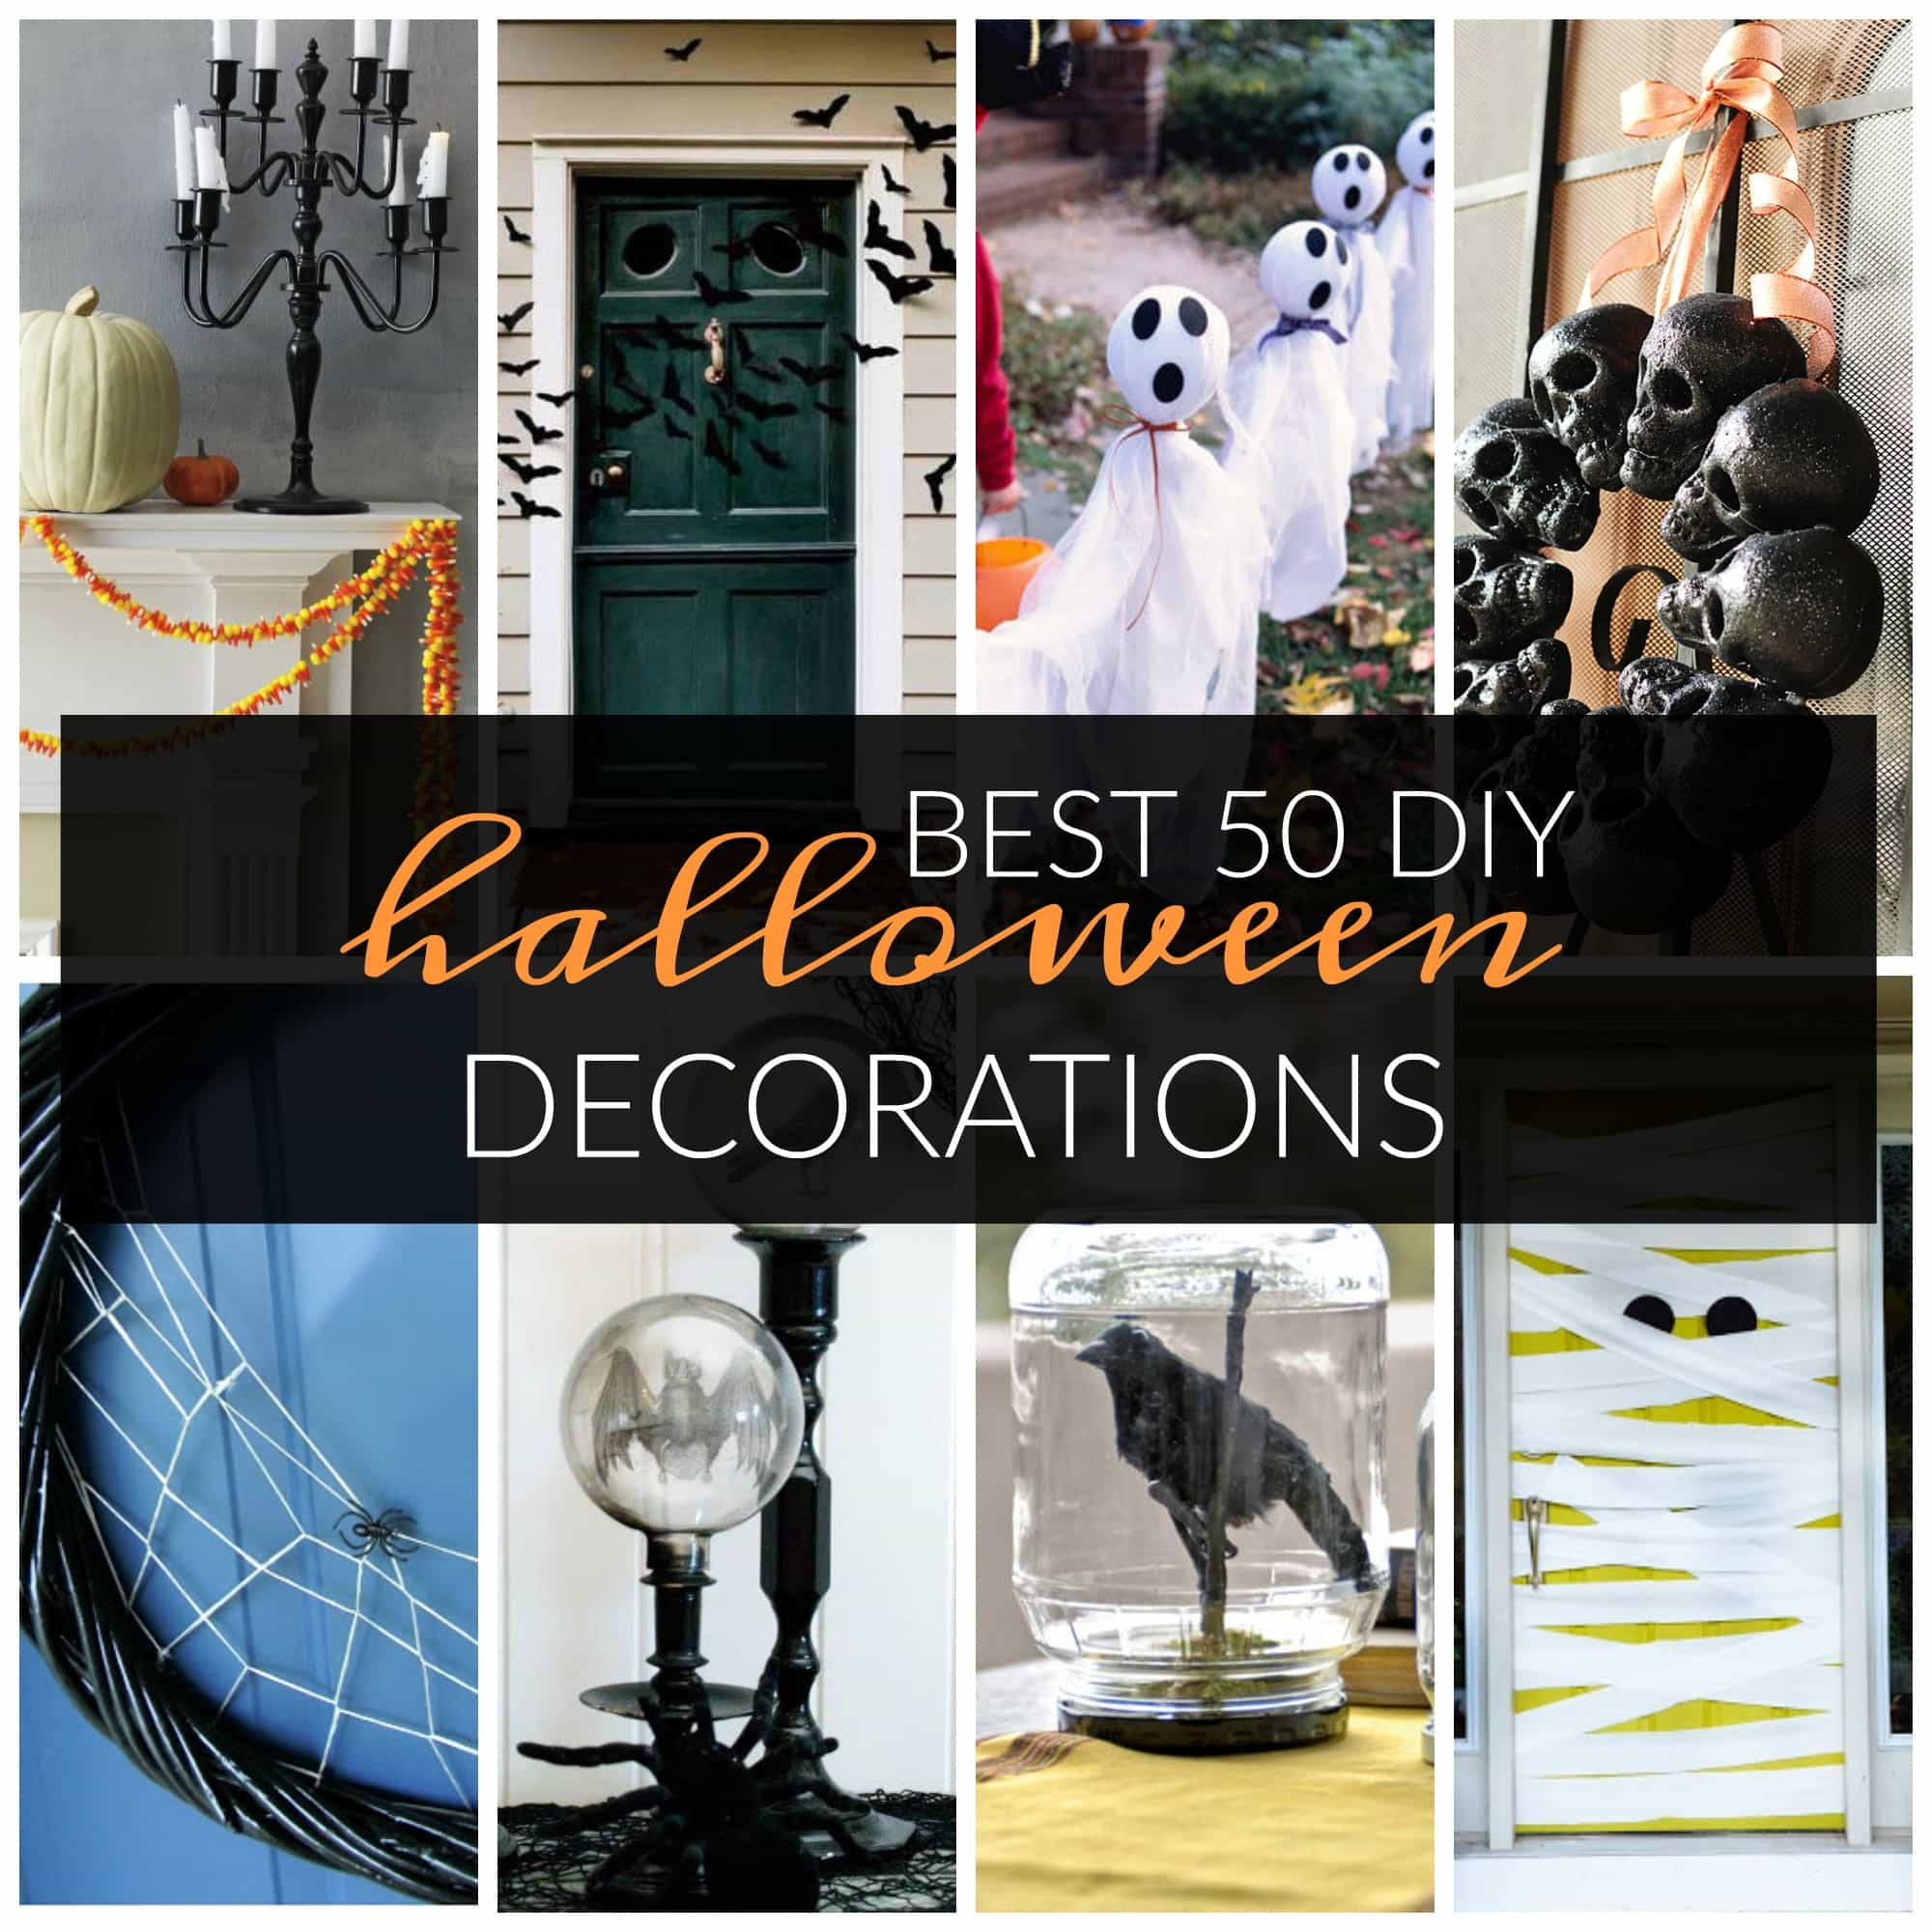 Best 50 DIY Halloween Decorations  A Dash of Sanity - Best Halloween Decorations 2016